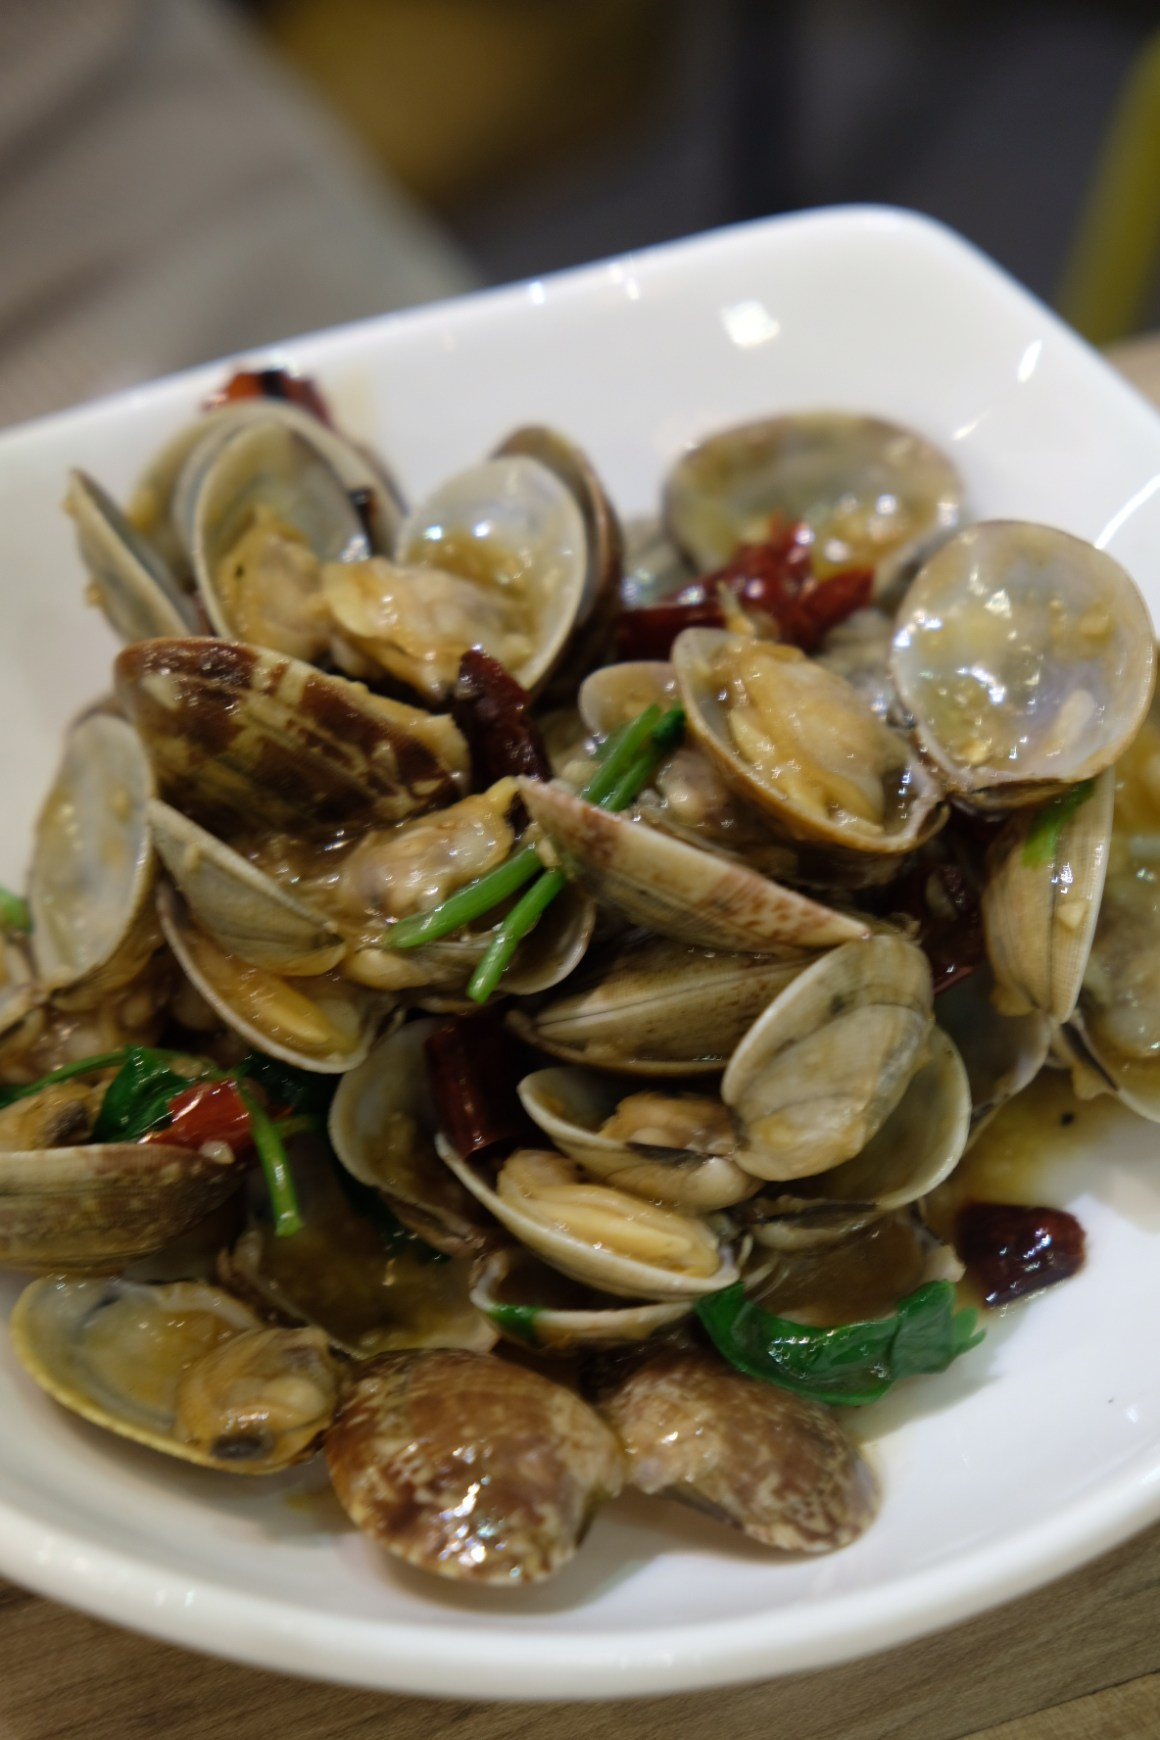 Fat Bird @ Serangoon Gardens, Second Outlet - Spicy Fragrant Stir-fried Clams